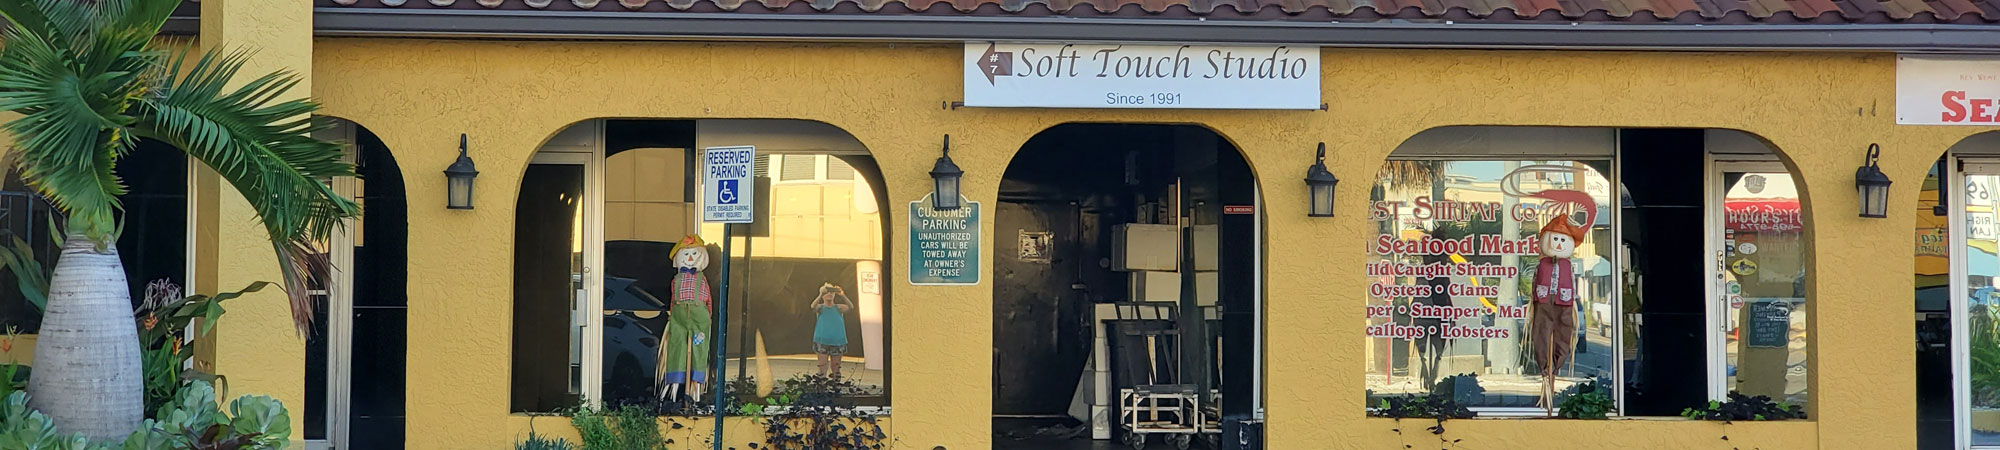 Contact Soft Touch Studio